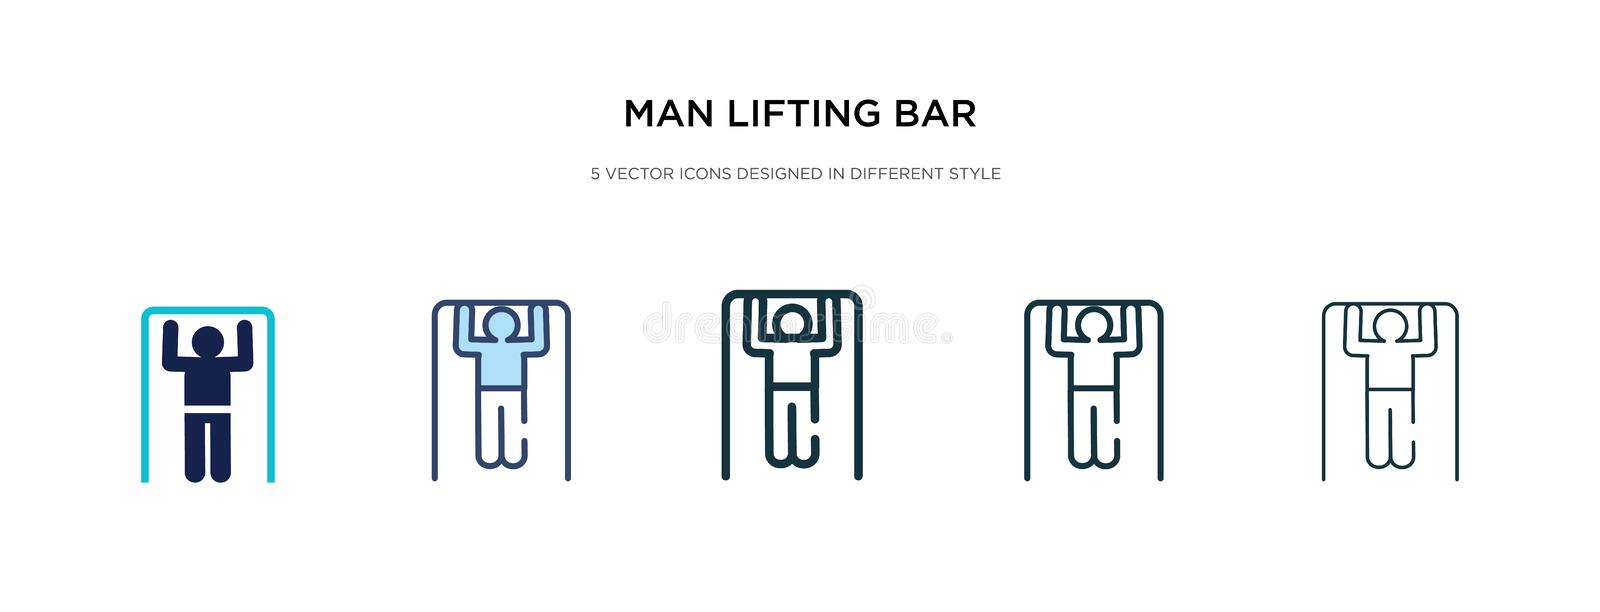 Man lifting bar icon in different style vector illustration. two colored and black man lifting bar vector icons designed in filled royalty free illustration